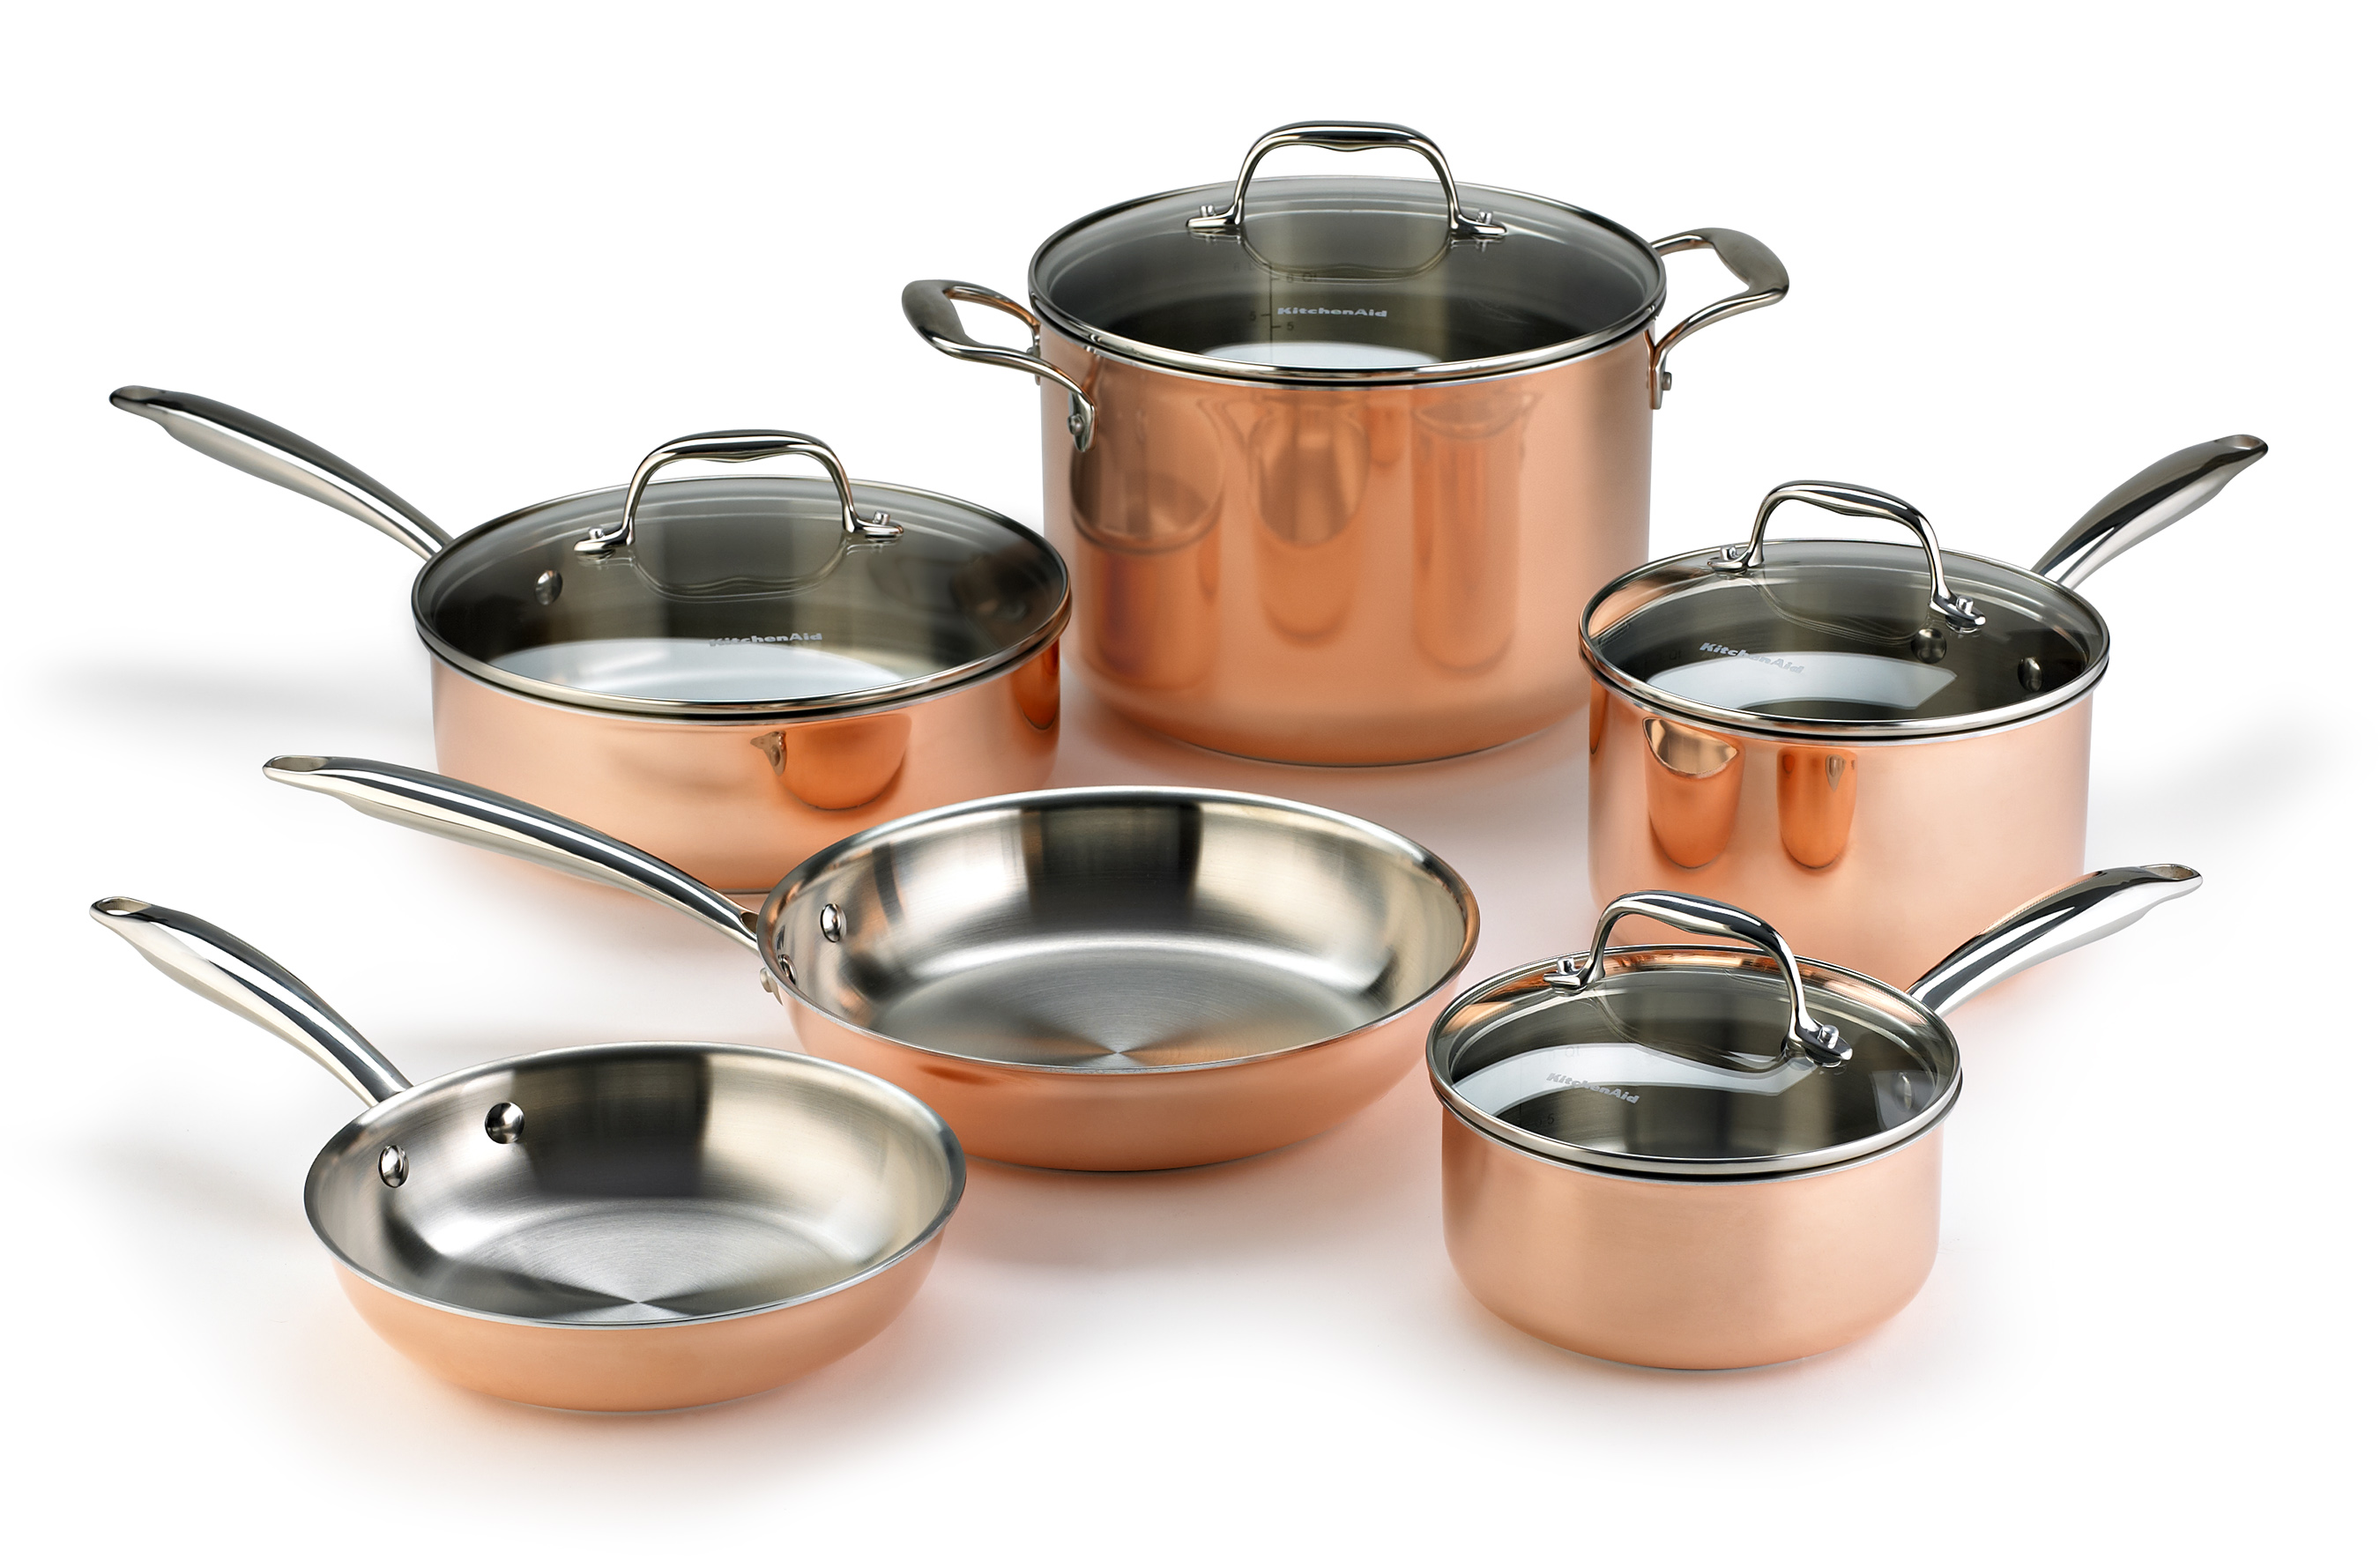 The Kitchenaid 174 Tri Ply Copper Cookware Www Fashion